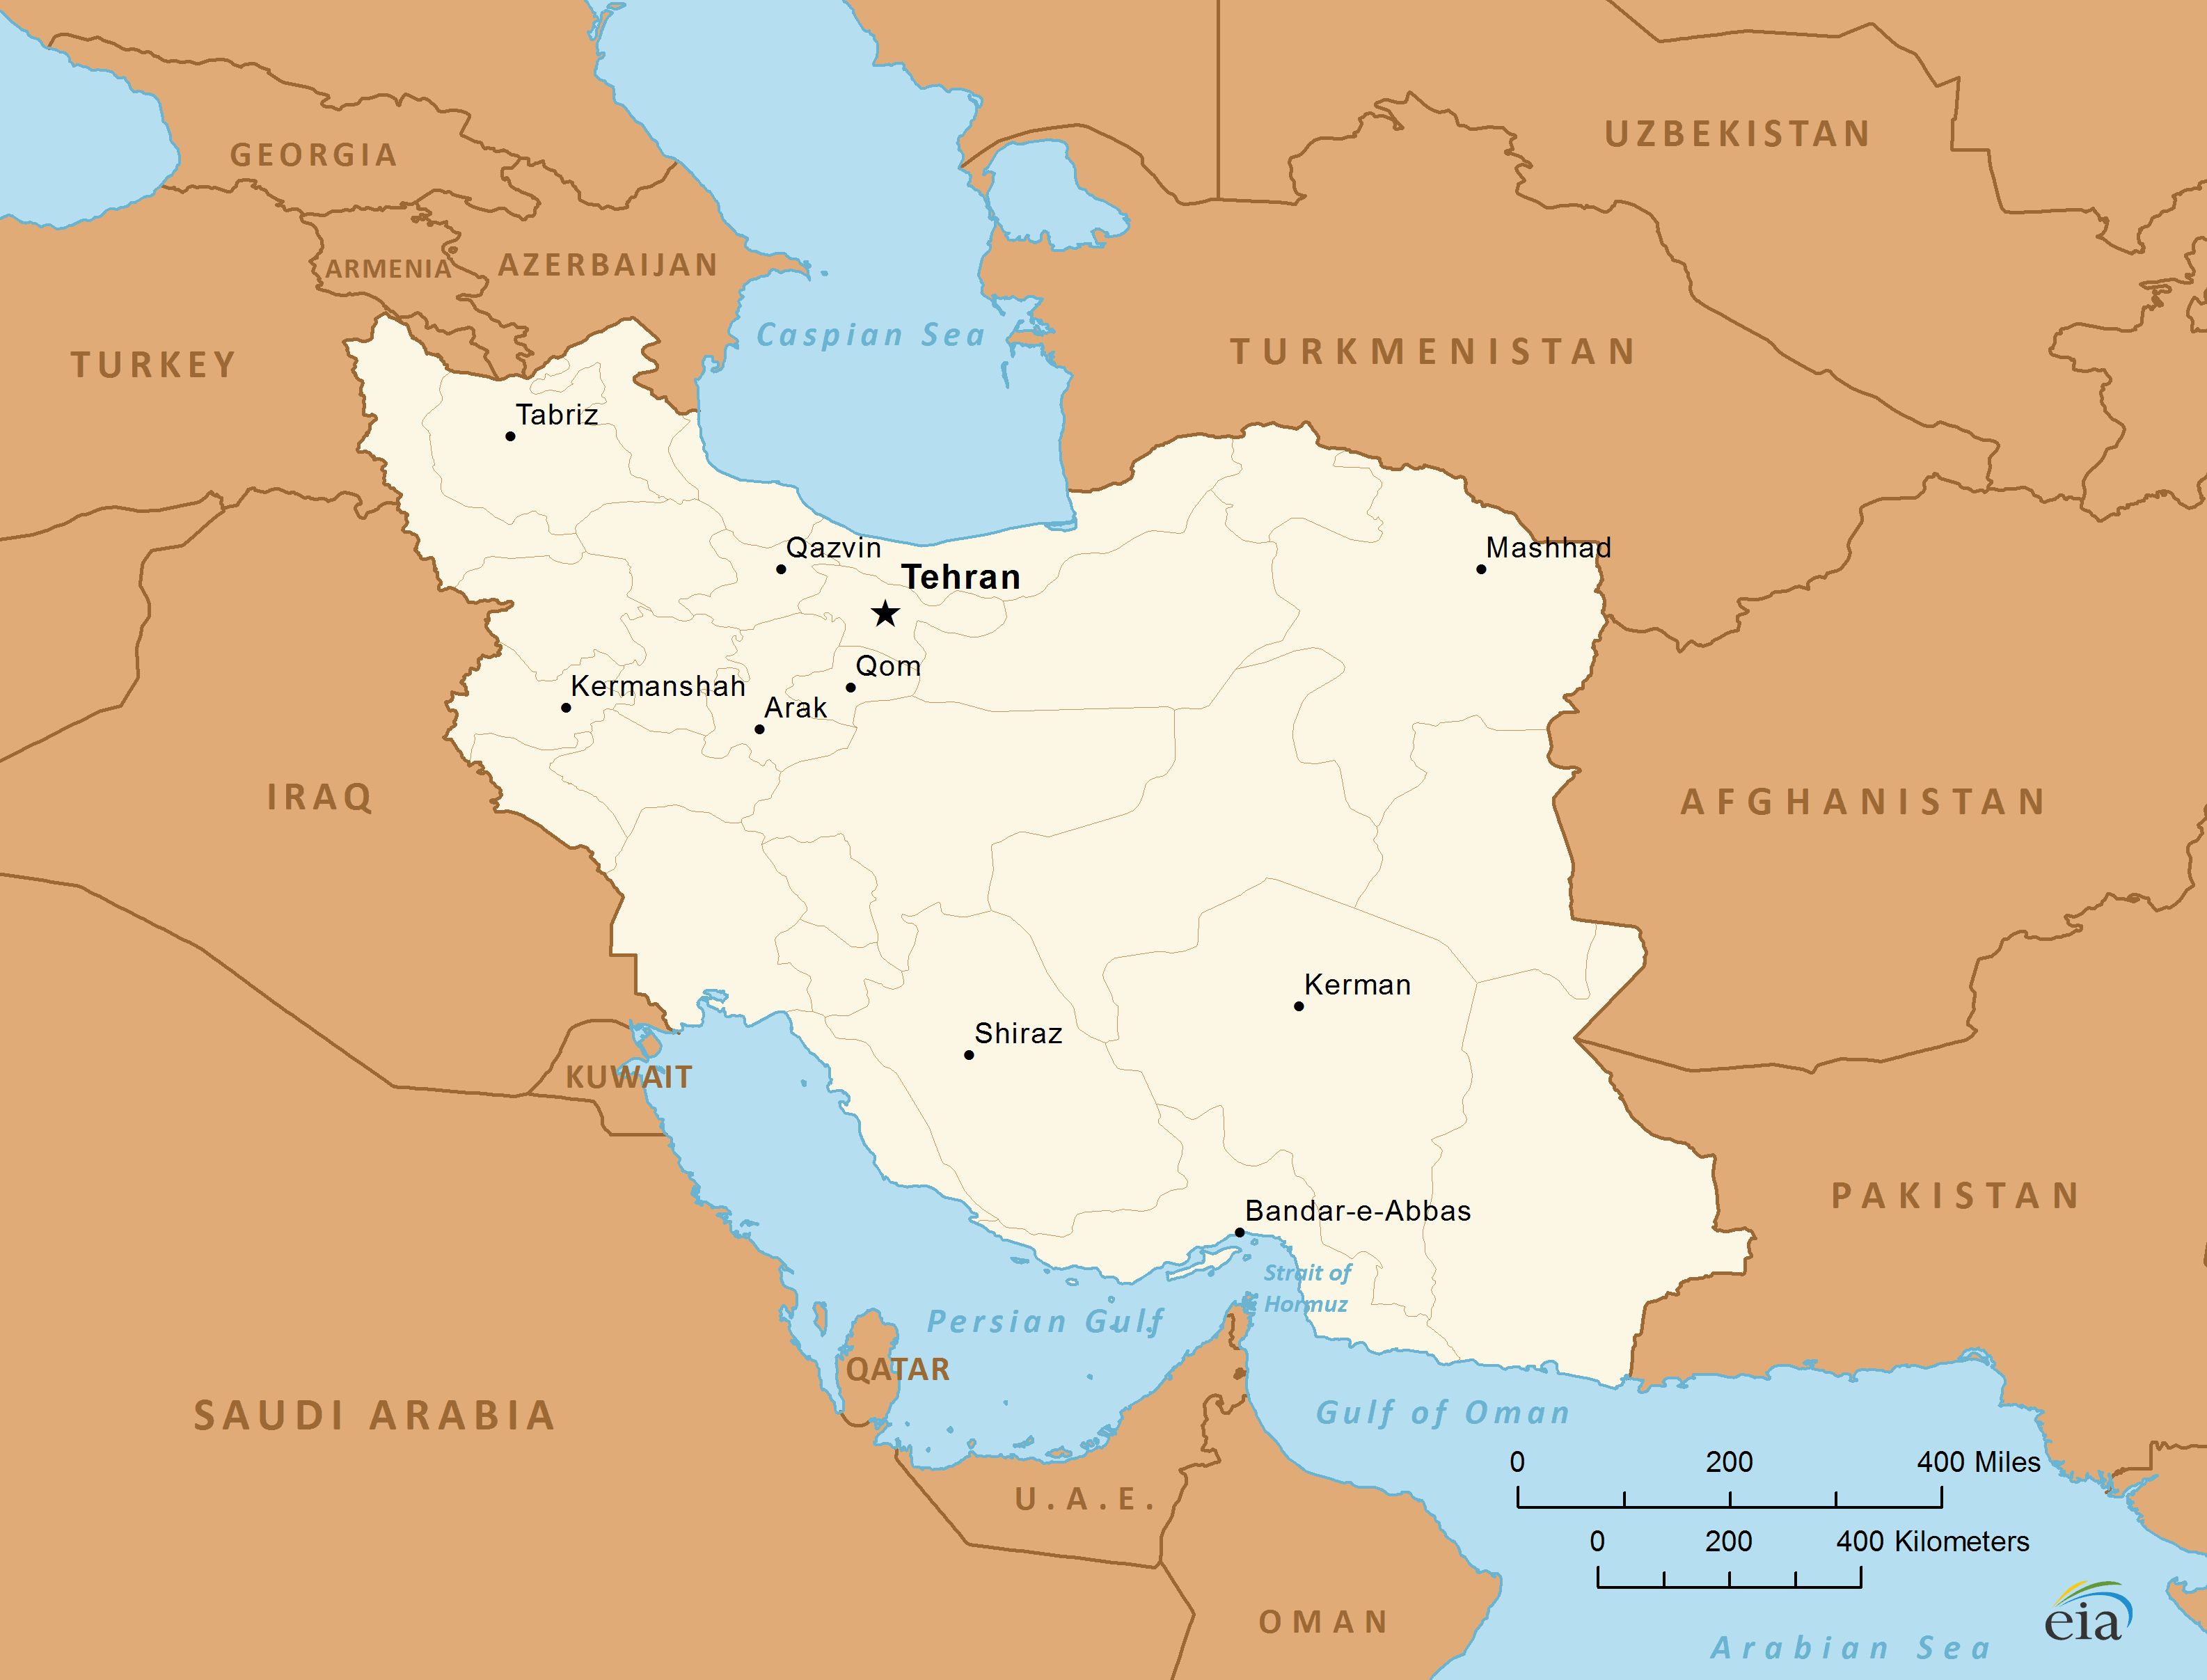 Image iran map newg future fandom powered by wikia iran map newg gumiabroncs Image collections